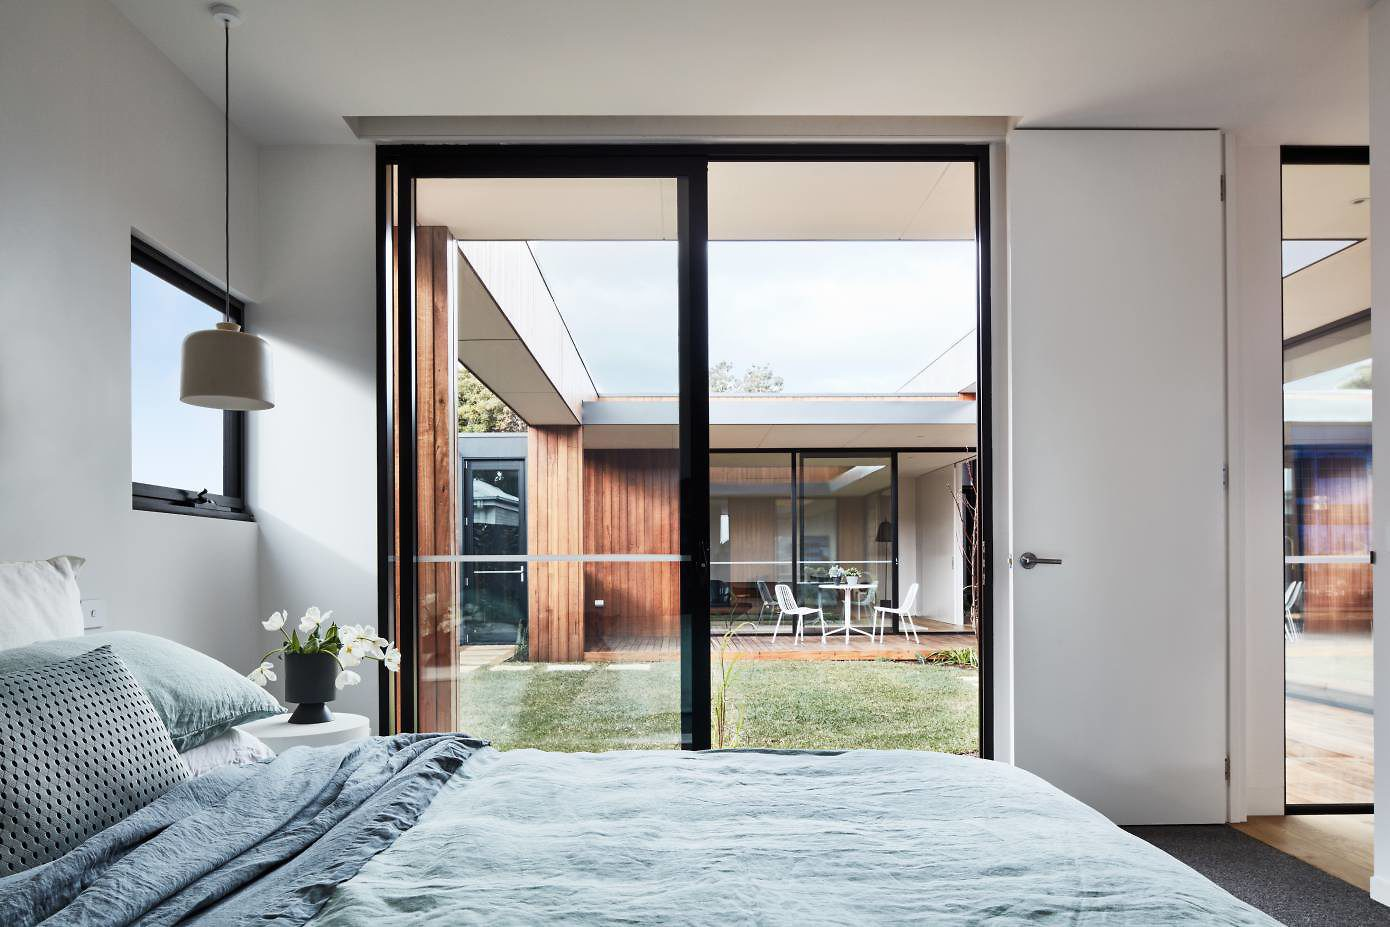 The Courtyard House by Life Spaces Group